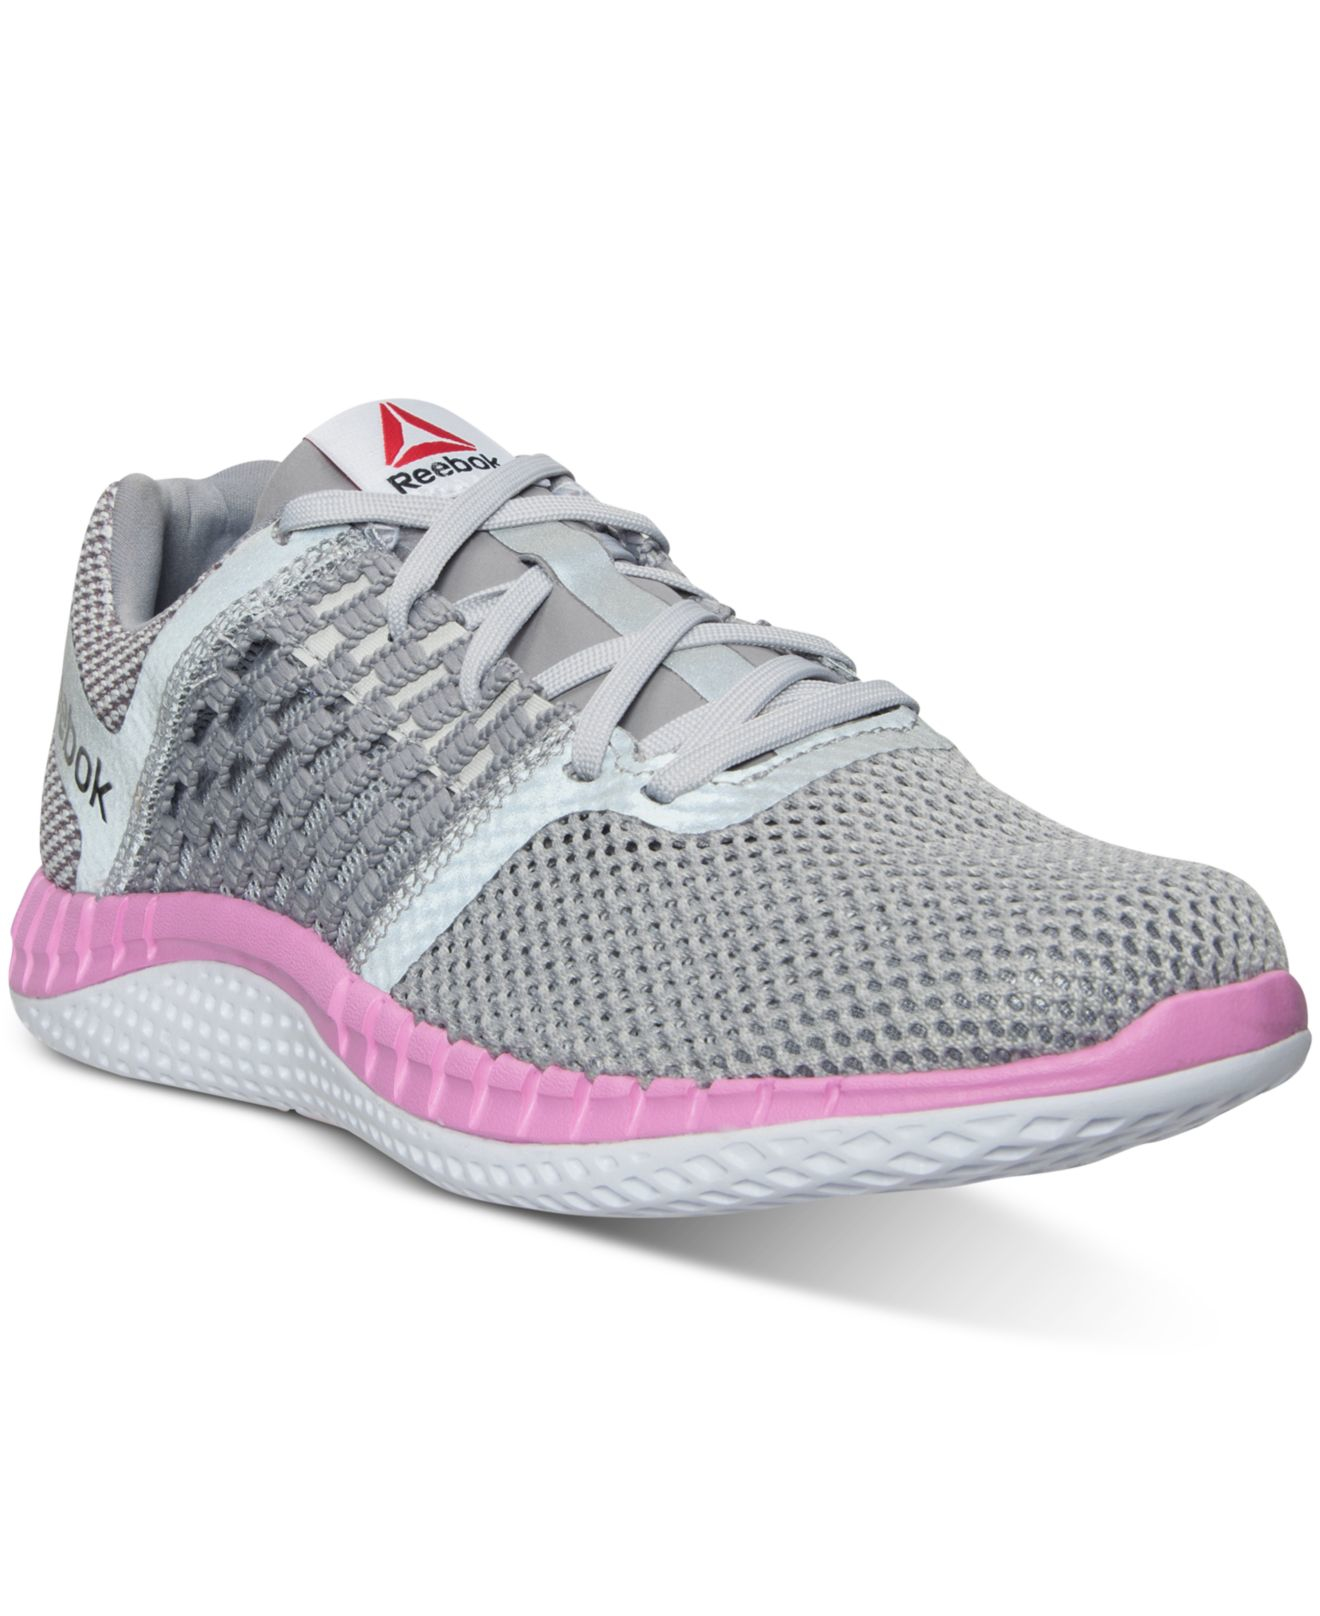 Lyst - Reebok Women s Zprint Running Sneakers From Finish Line in Pink 0c6575c77